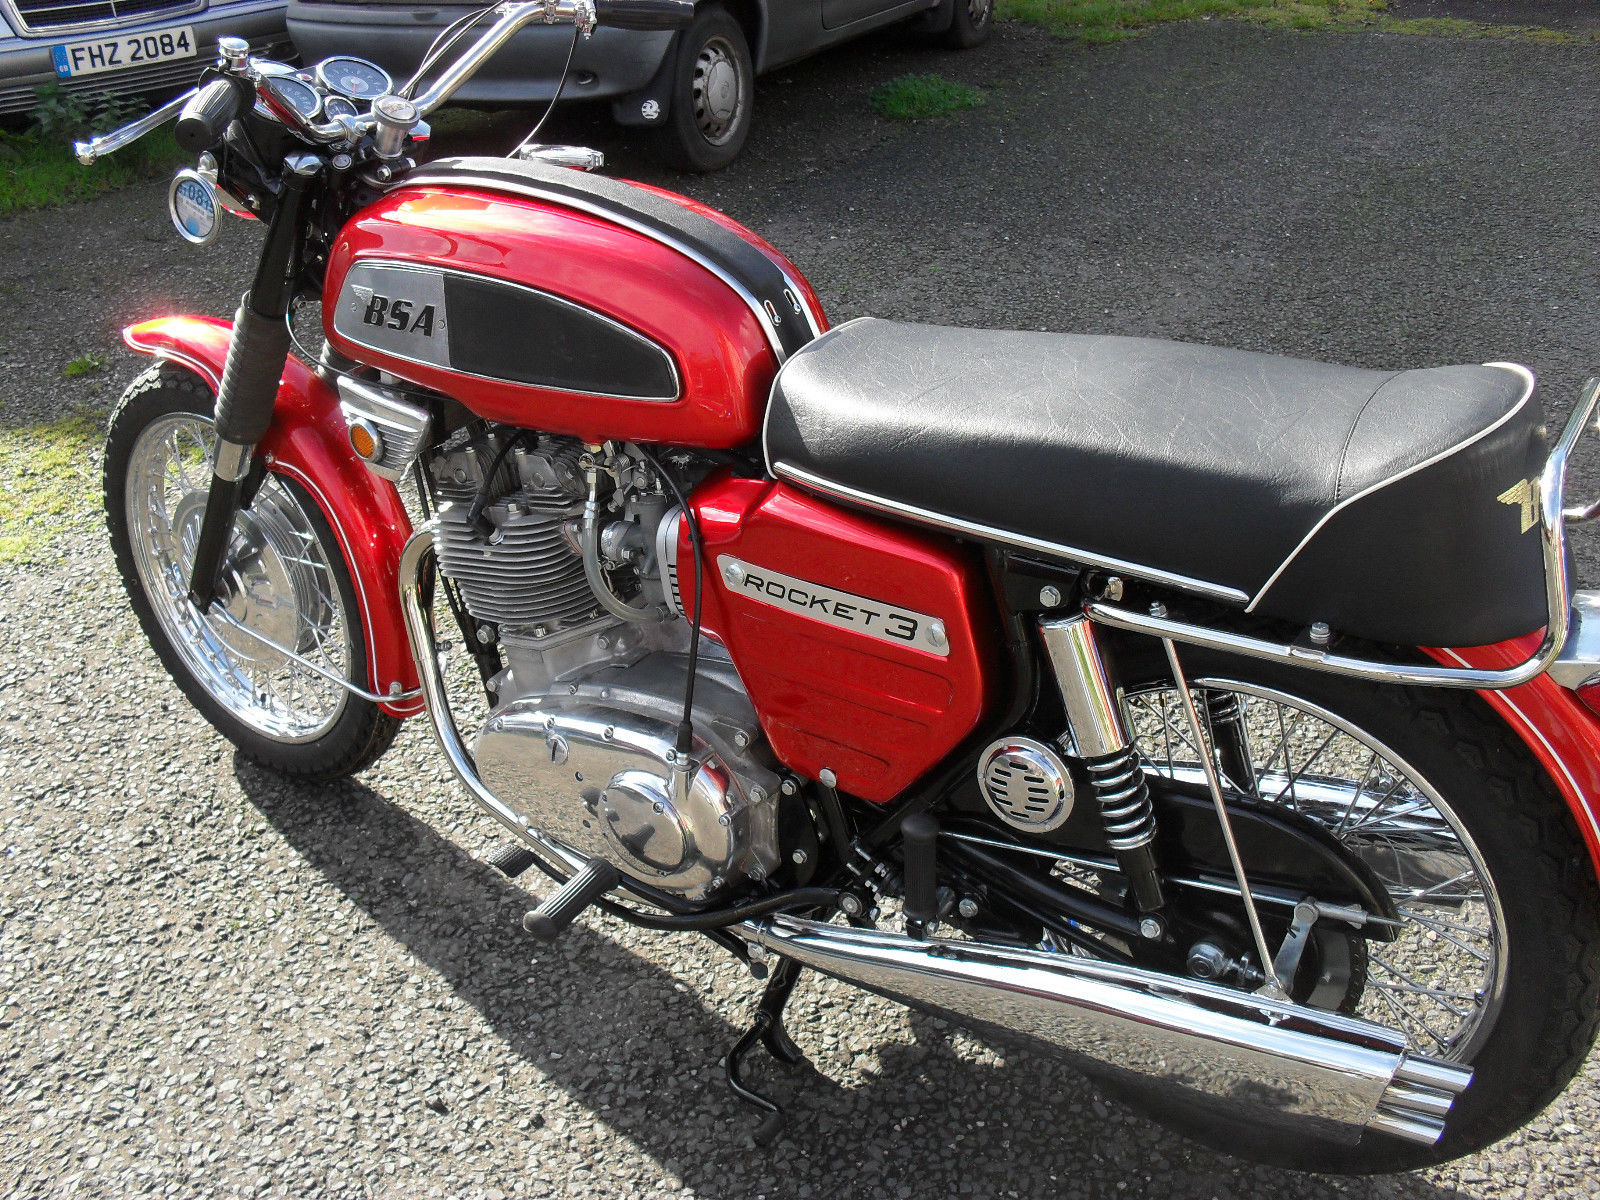 BSA Rocket 111 - 1969 - Left Side View, Fuel Tank, Seat and Side Panel.